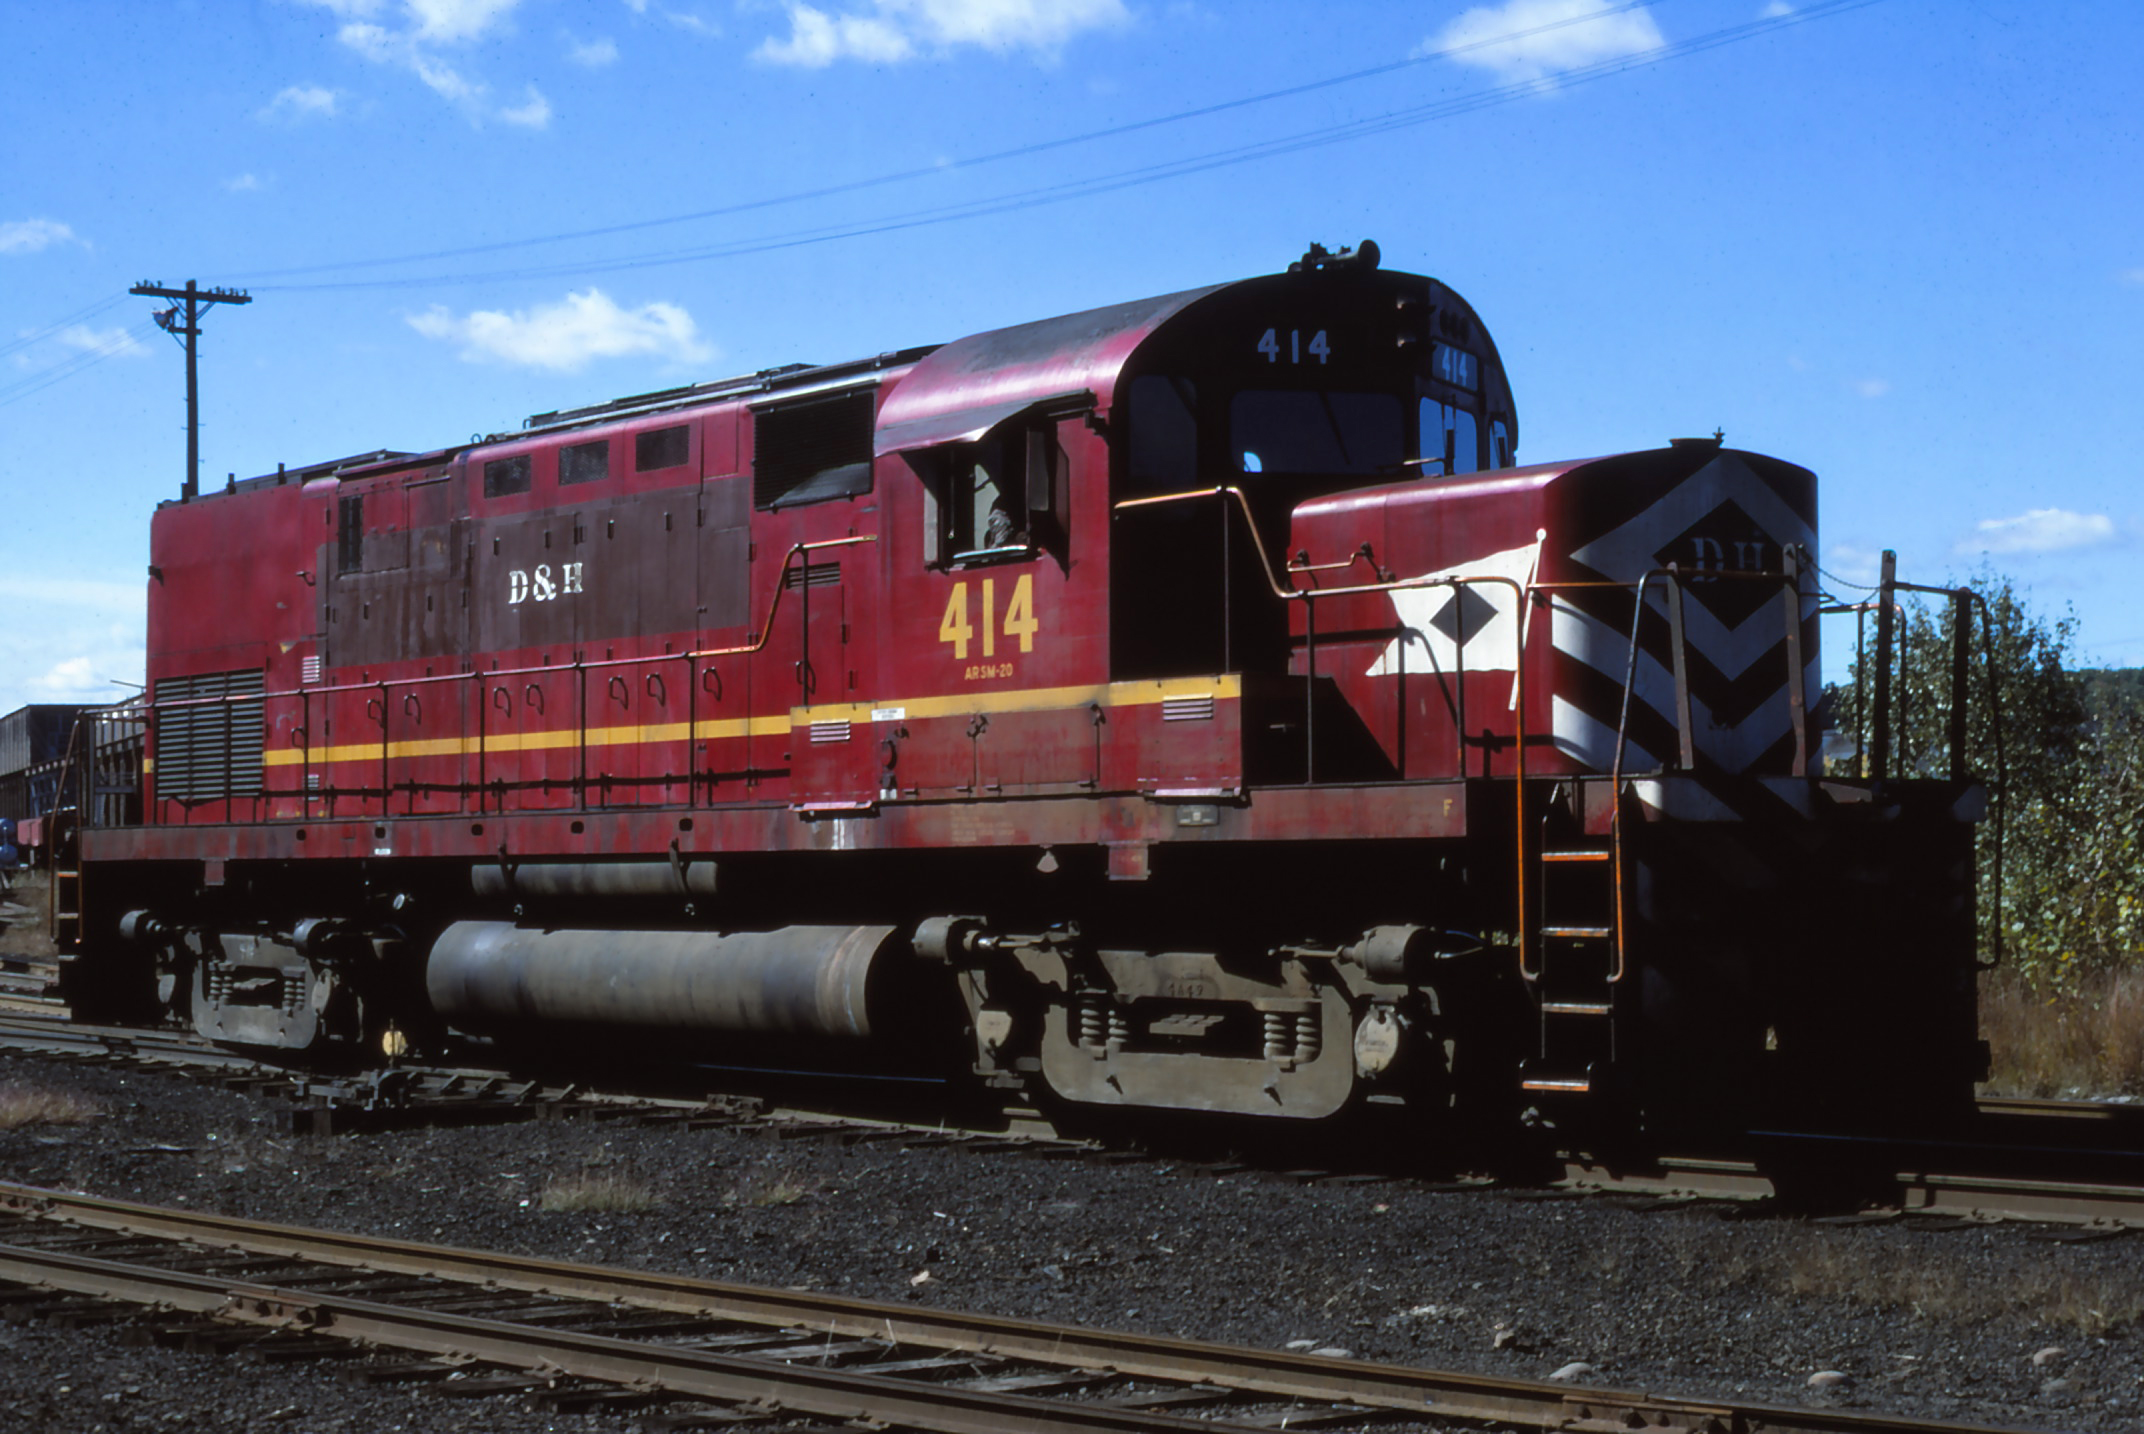 D&H C-420 #414 at Colonie in September of 1976.  The Garbely Publishing Company collection